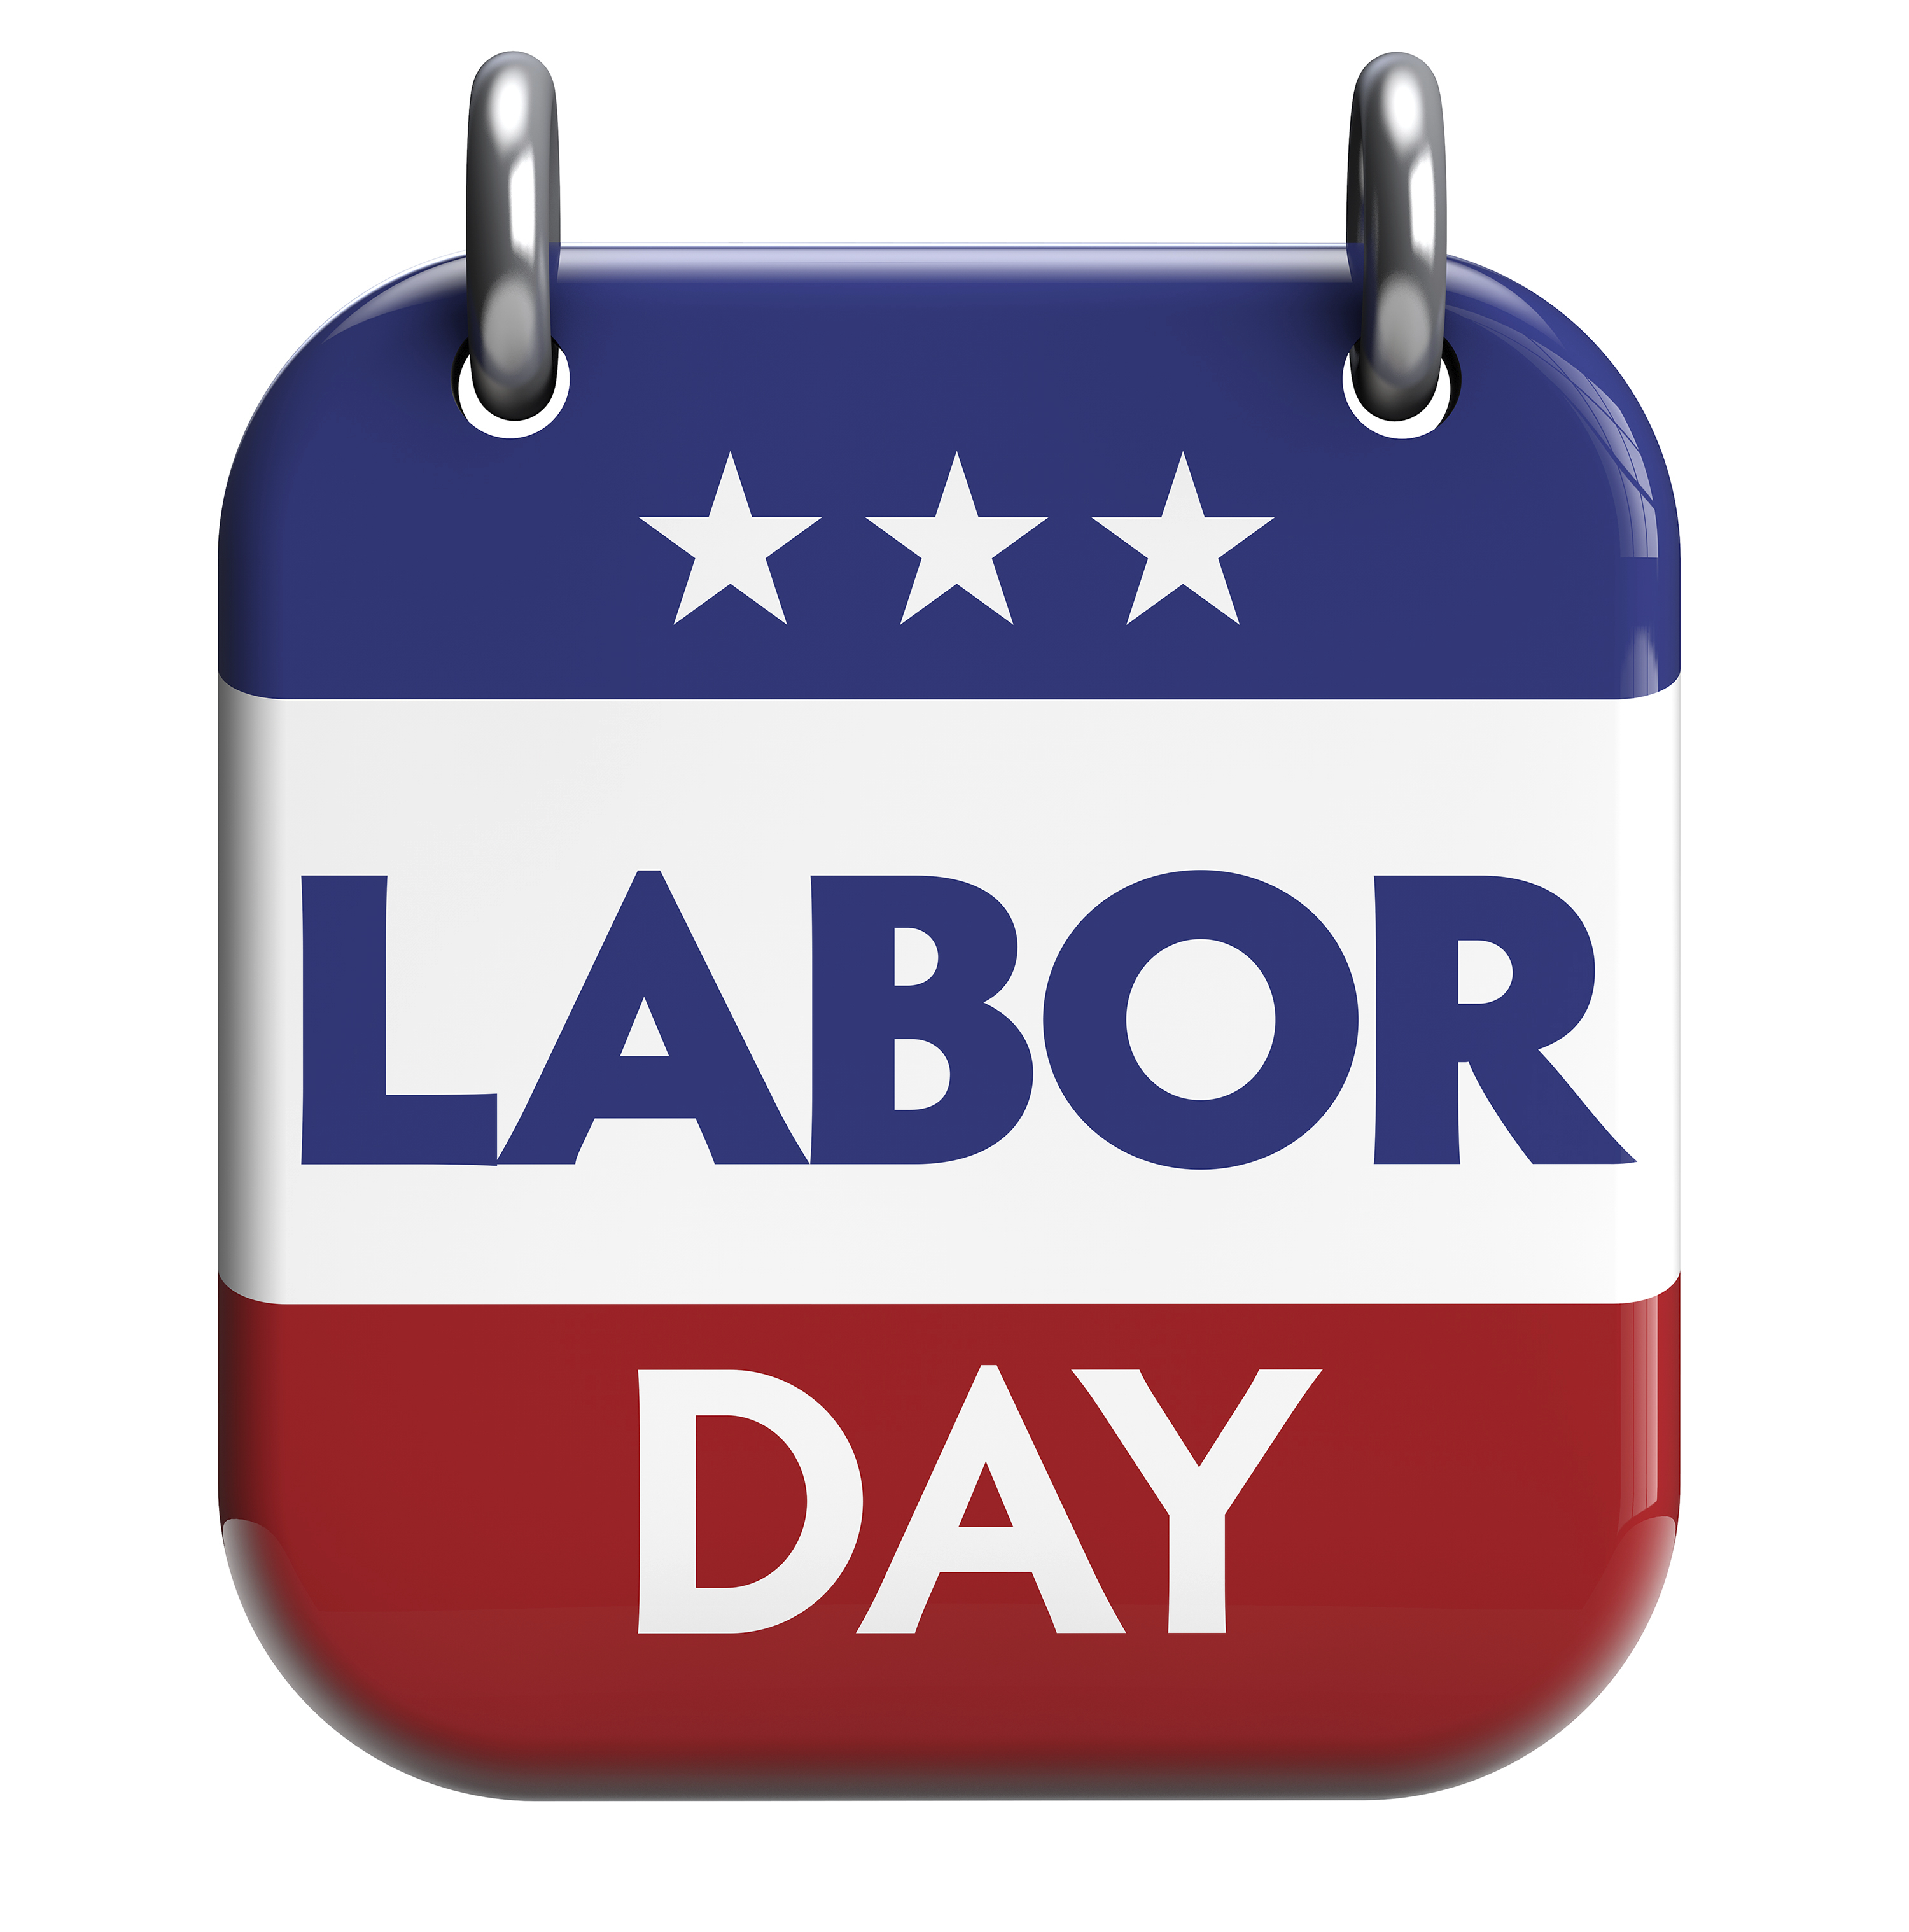 Images of Labor Day | 3000x3036